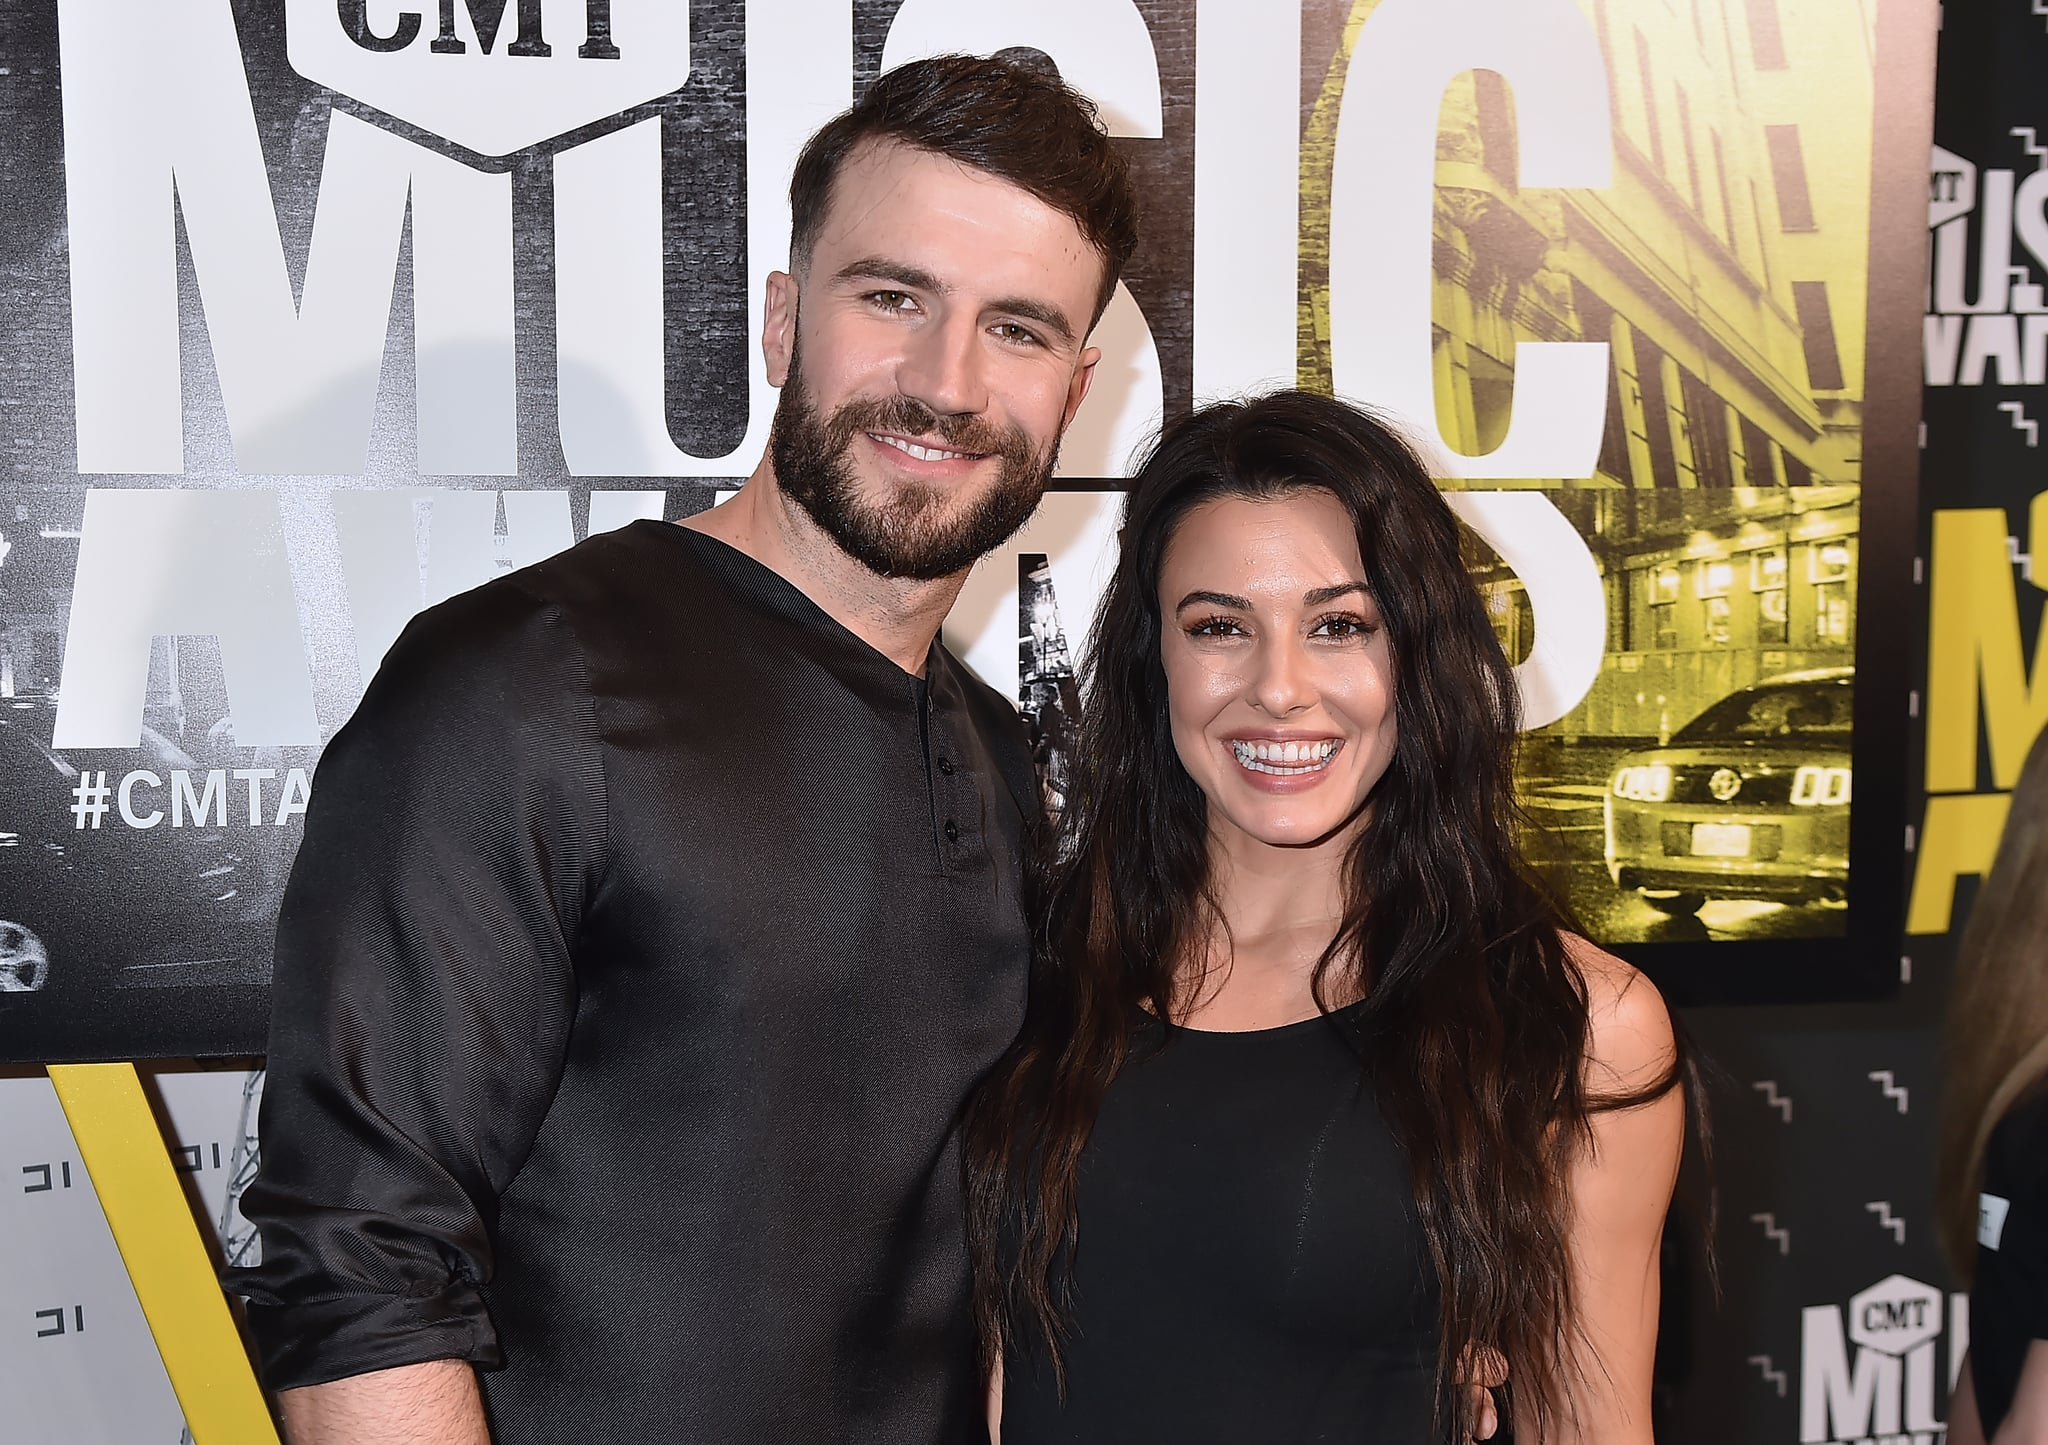 Sam hunt talks about getting his girlfriend back june 2017 sam hunt married his longtime love hannah lee fowler in april but like many other celebrity couples they actually suffered a split before making it m4hsunfo